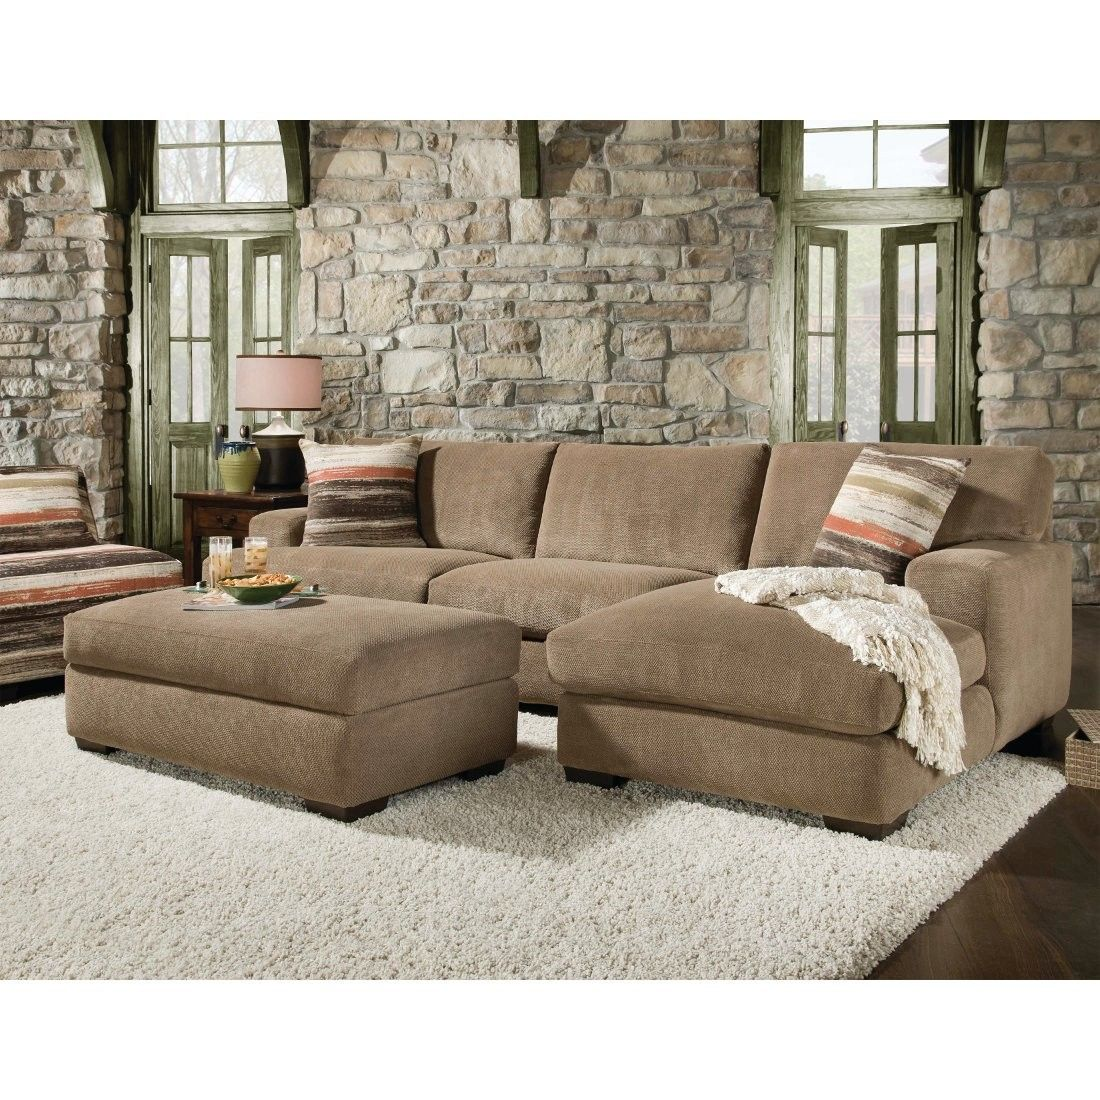 Visit Connu0027s HomePlus to shop our Living Room Furniture including our Mead Living Room - LAF Sofa RAF Chaise u0026 Ottoman - Sectional - Cocoa Apply for our ...  sc 1 st  Pinterest : corinthian furniture sectional - Sectionals, Sofas & Couches